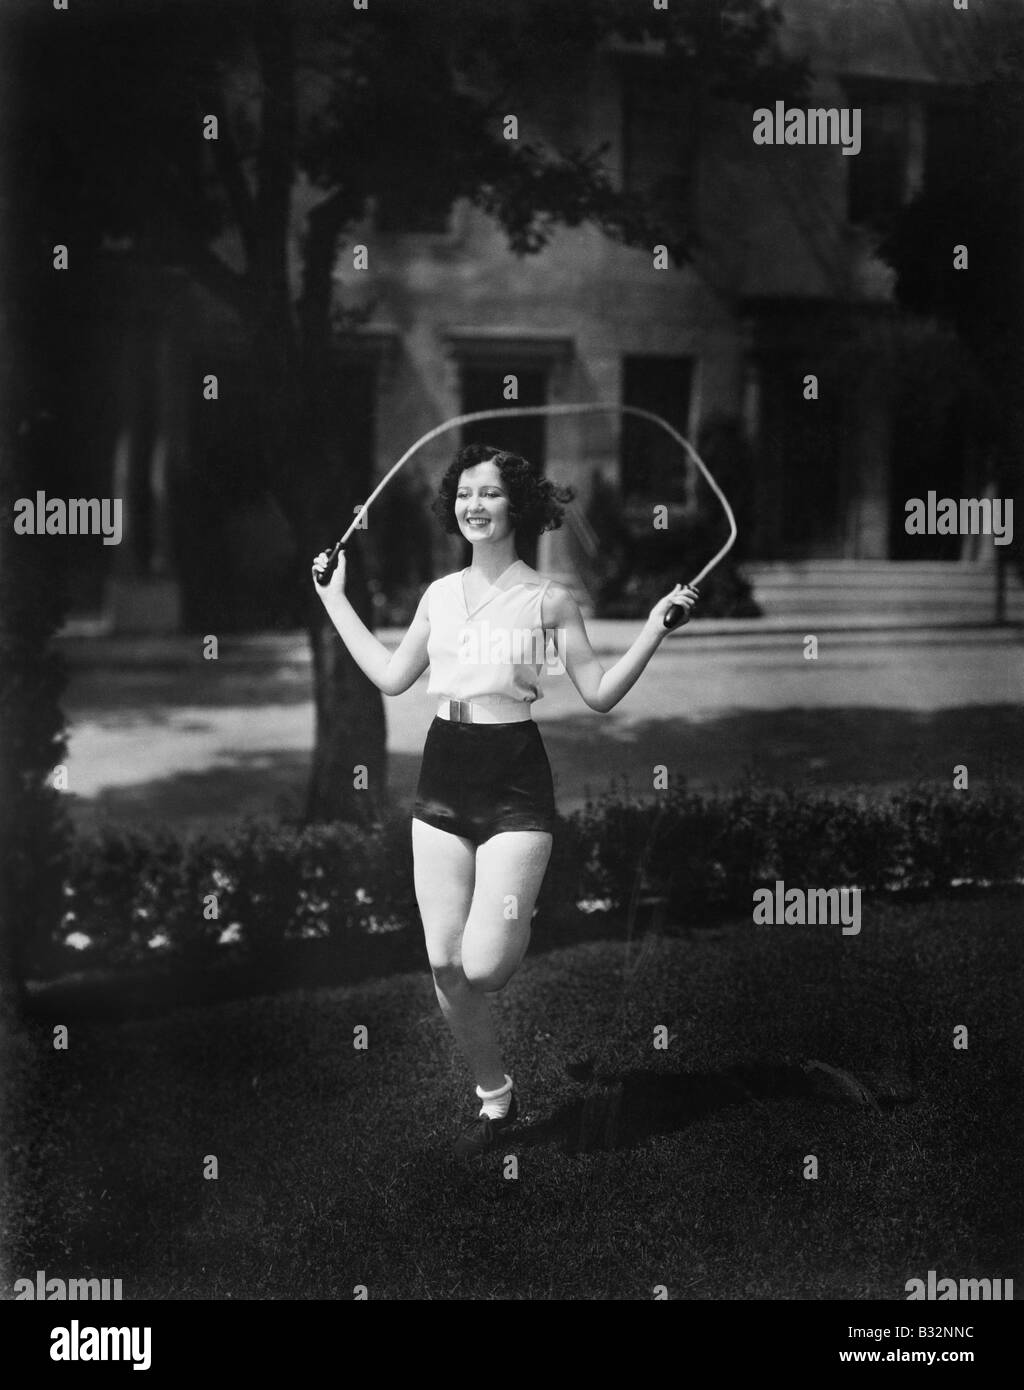 Woman jumping rope - Stock Image